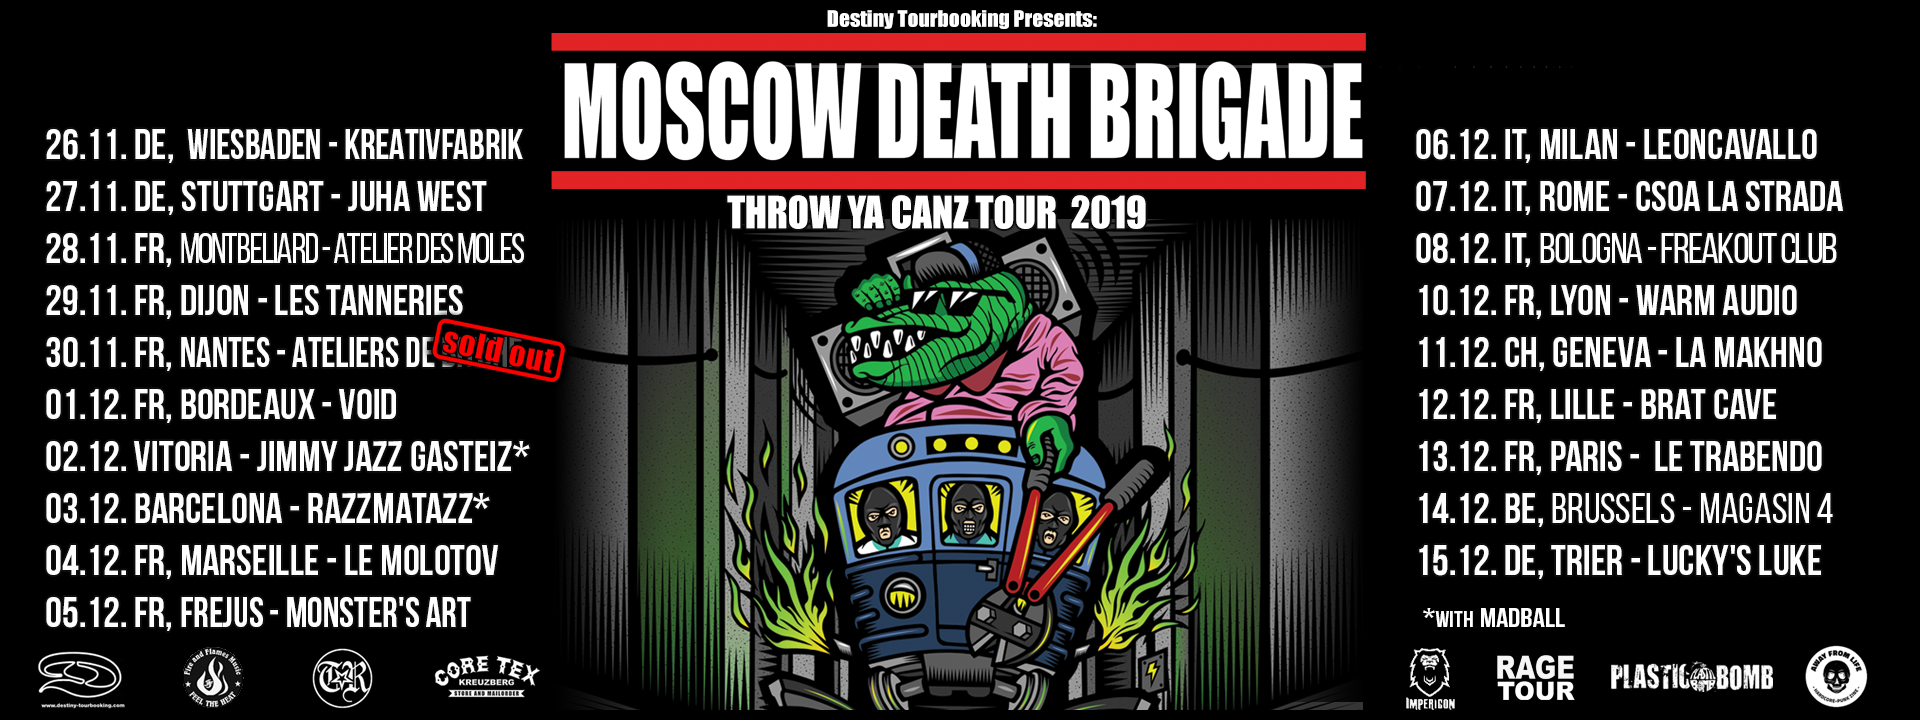 Moscow Death Brigade – Throw Ya Canz Tour 2019